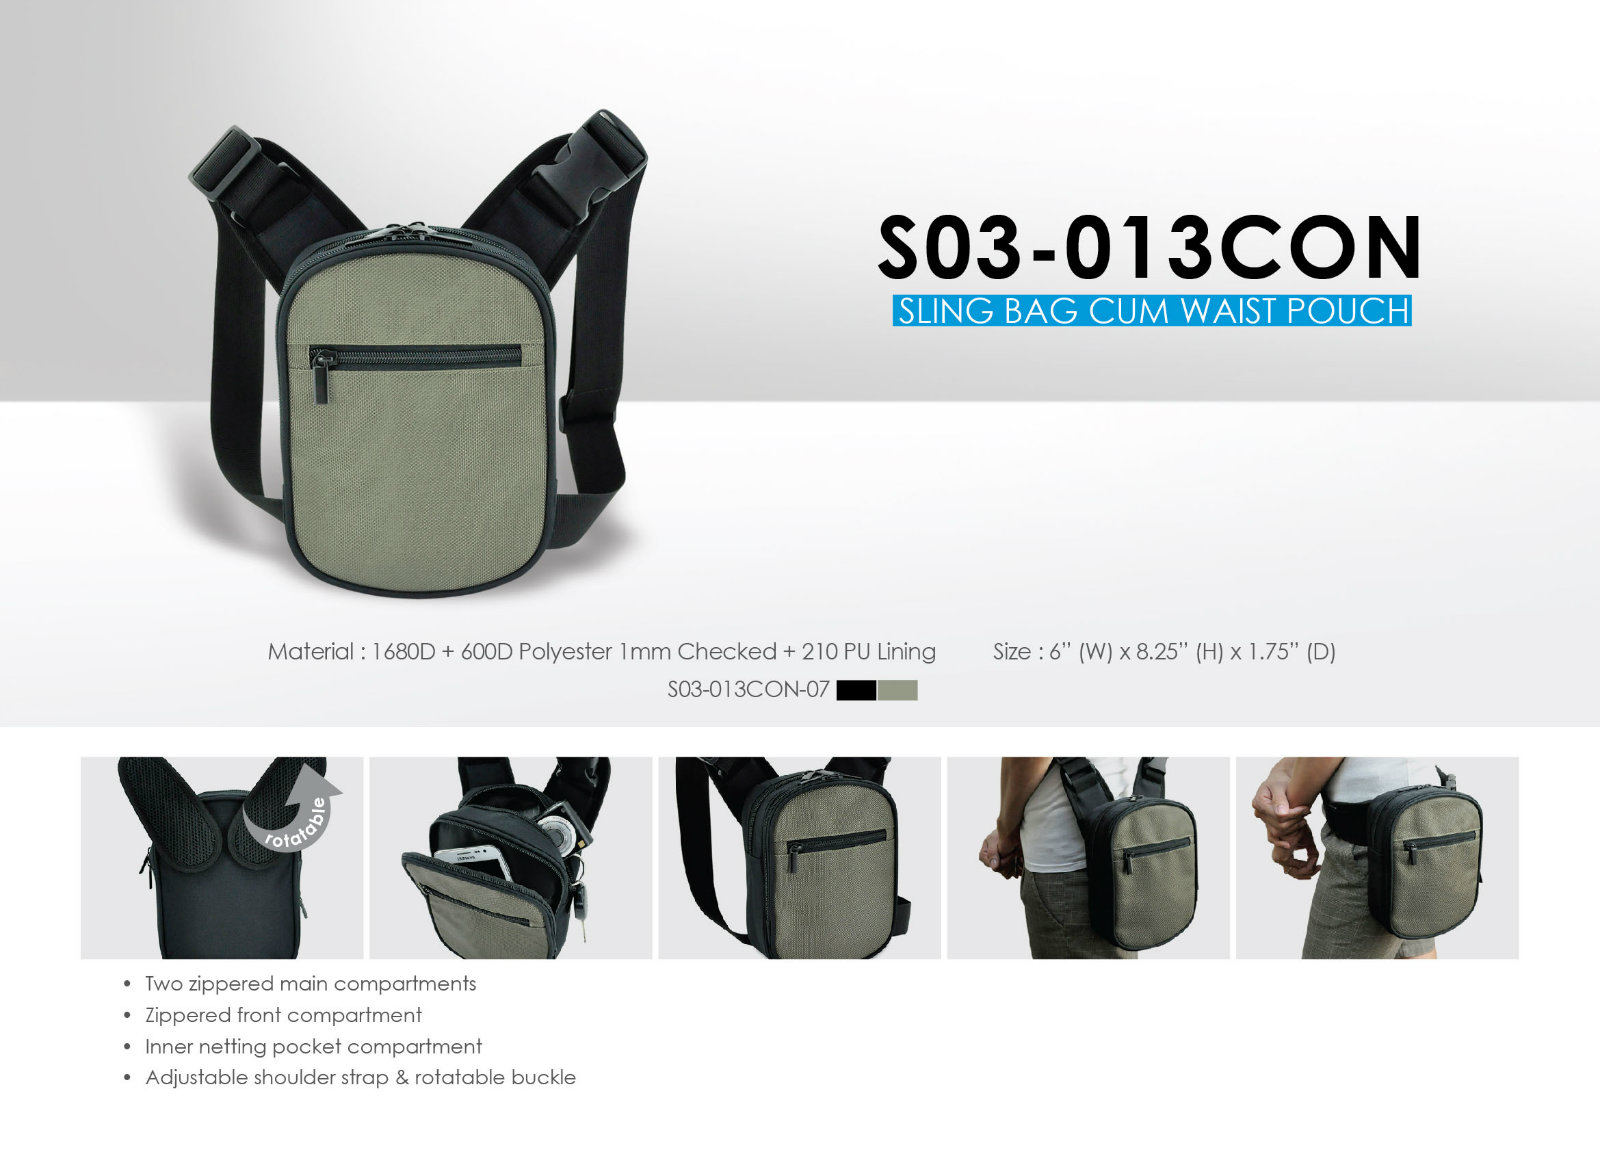 2 Way Waist Pouch + Sling Bag S03-013CON